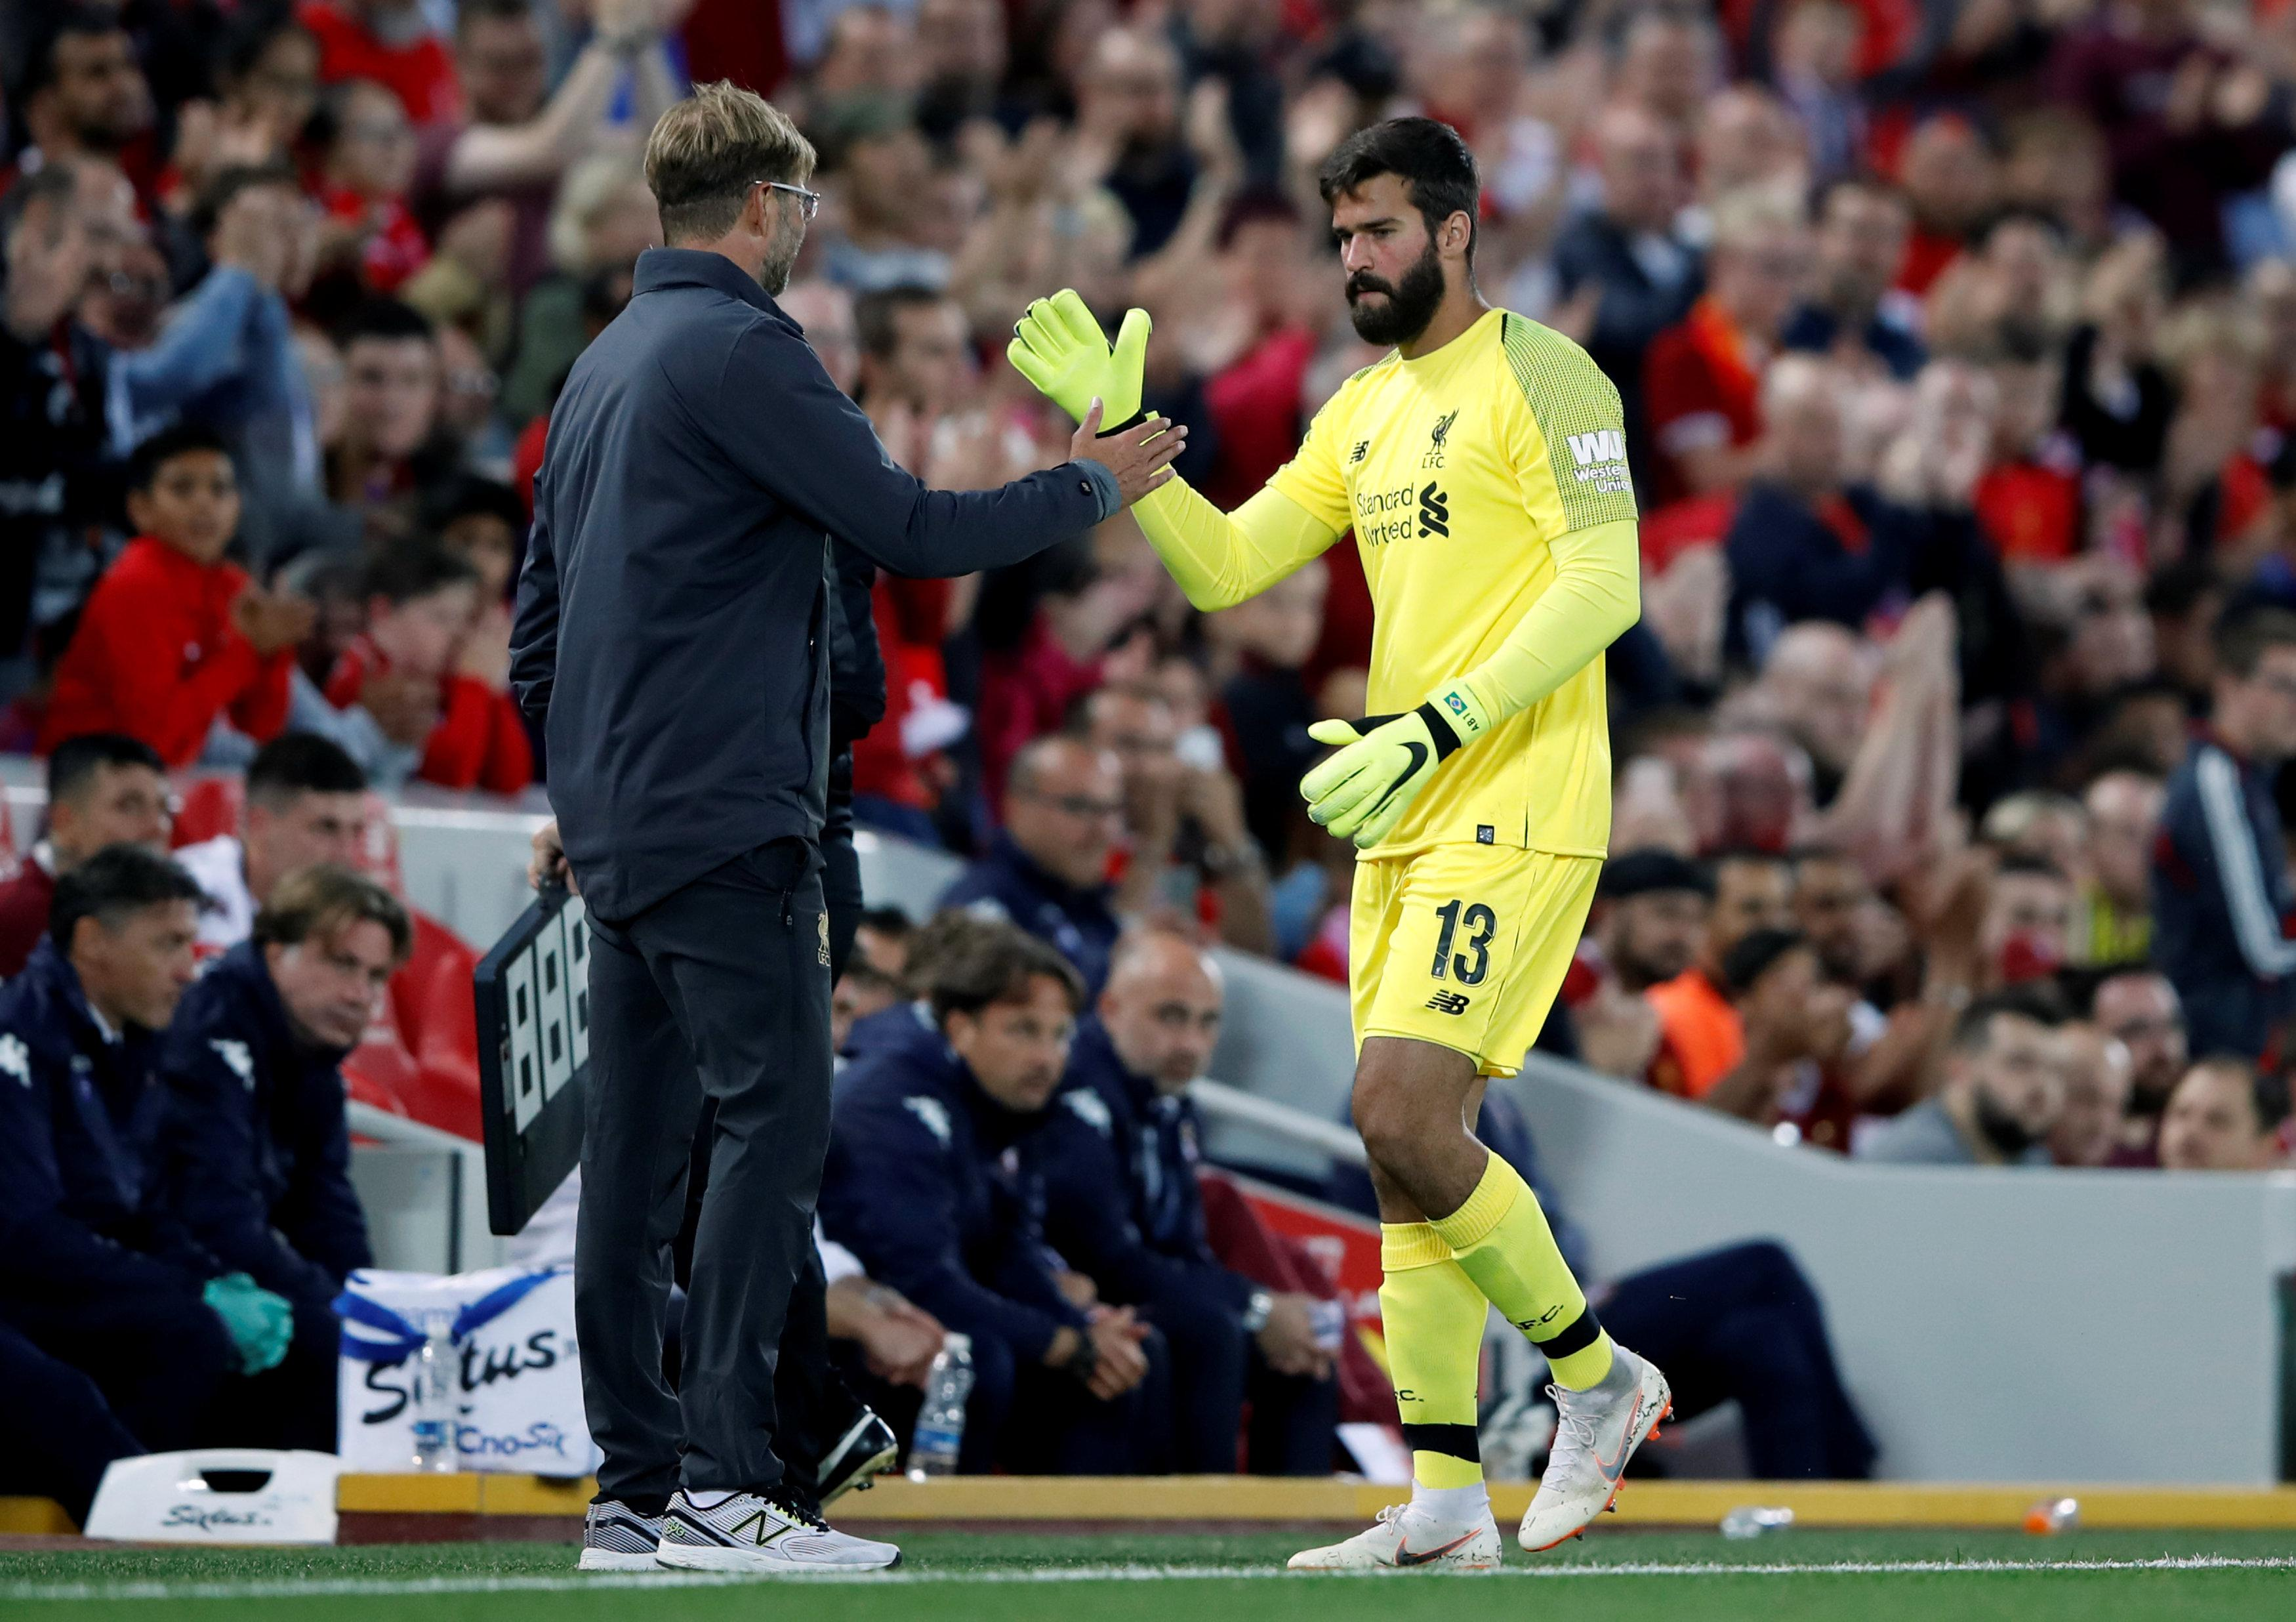 Klopp broke the world record fee for a goalkeeper when he netted Roma's Alisson